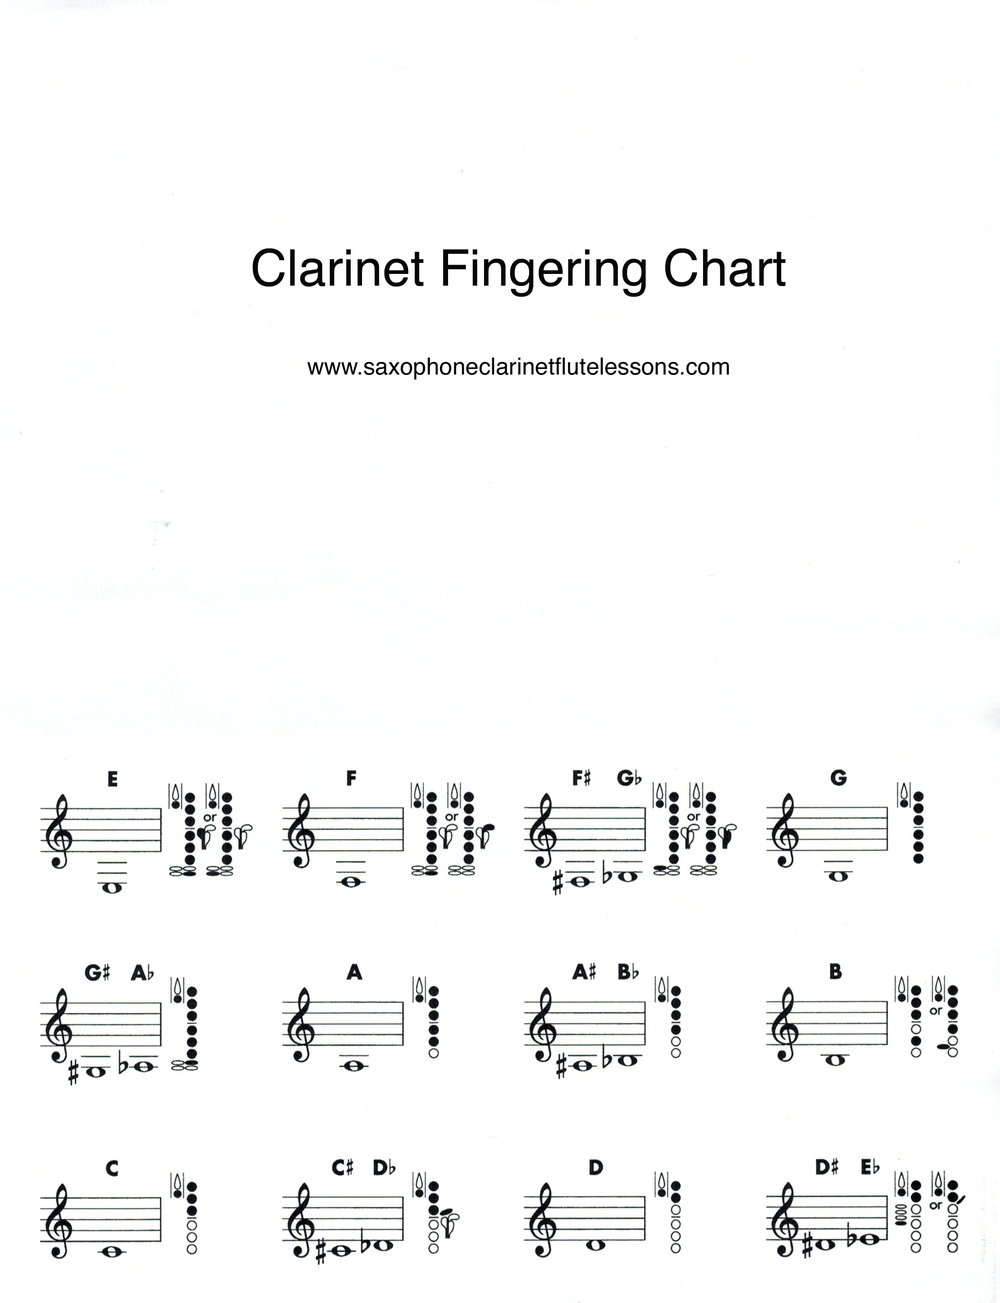 Basic Clarinet Fingering Chart Saxophone Clarinet and Flute – Saxophone Fingering Chart